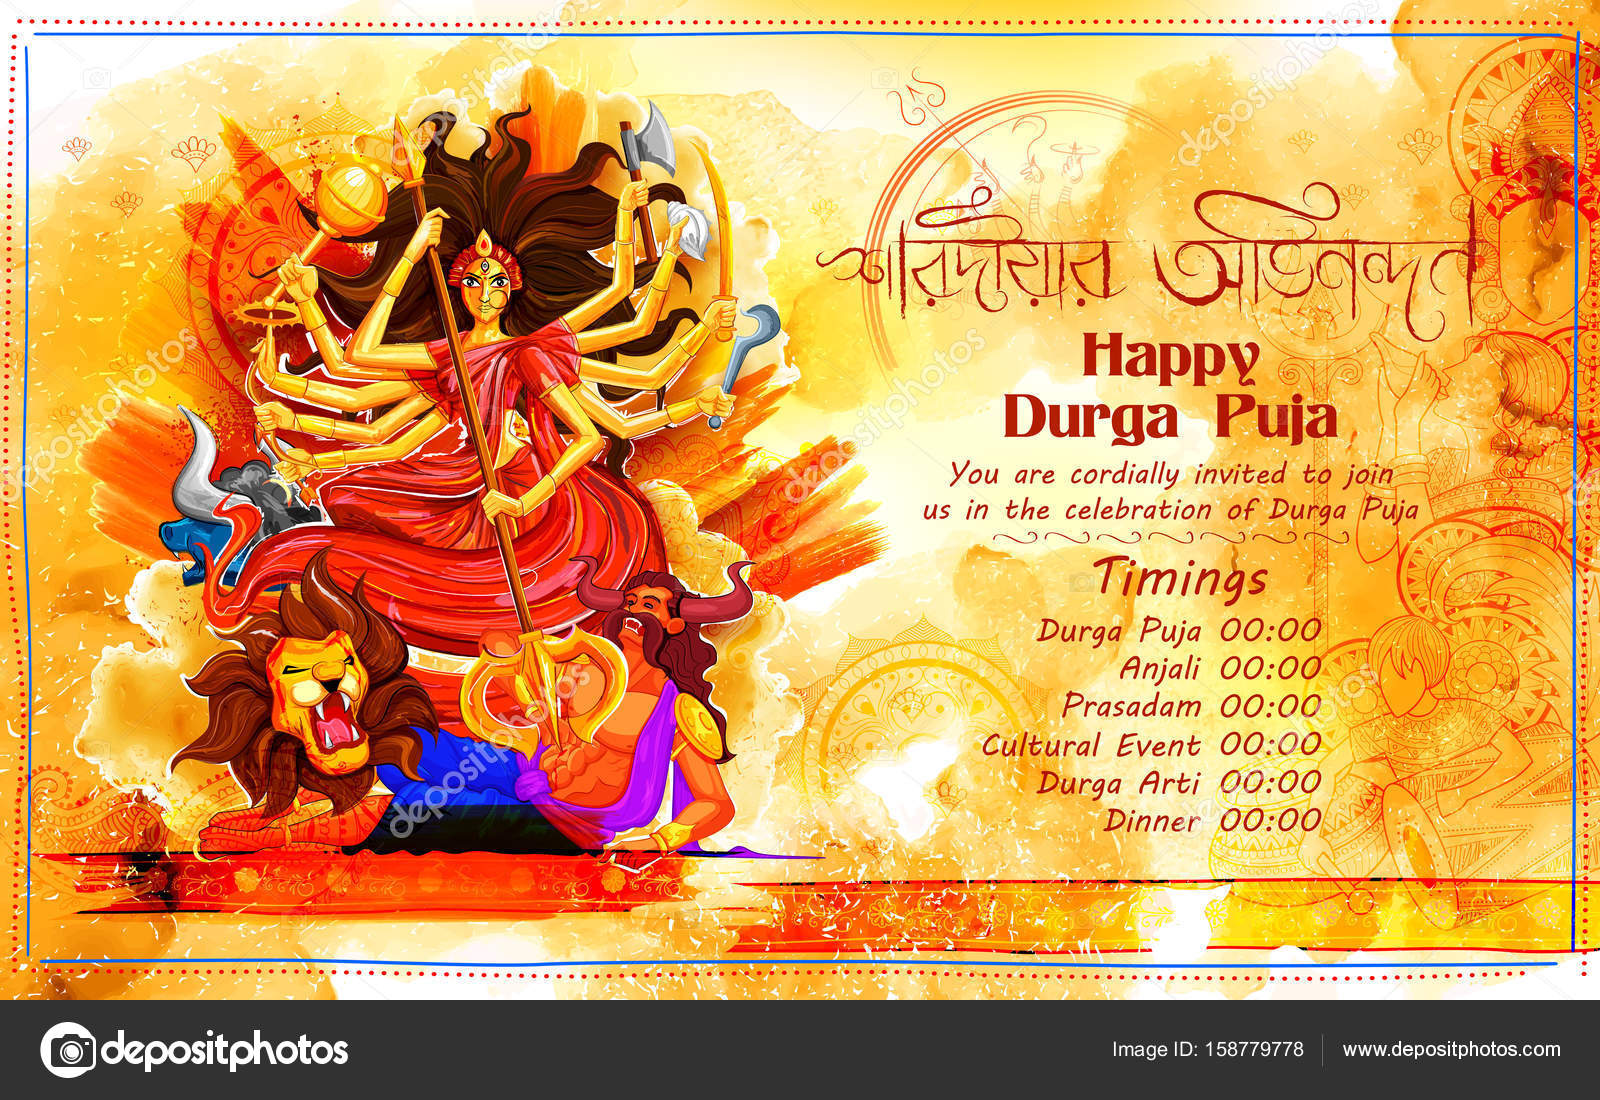 Goddess durga in subho bijoya happy dussehra background with bengali goddess durga in subho bijoya happy dussehra background with bengali text sharodiya abhinandan meaning autumn greetings m4hsunfo